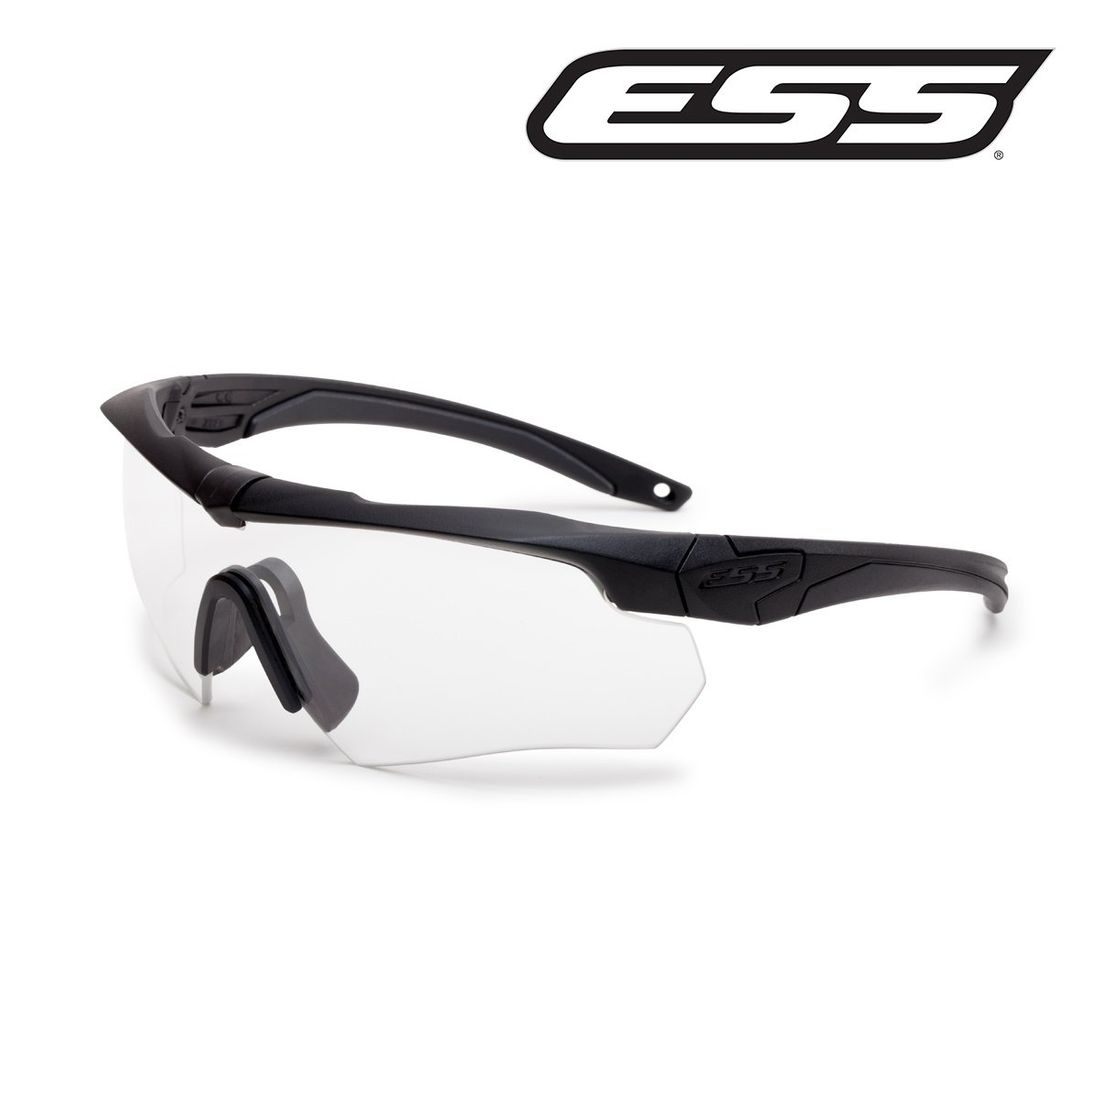 9a6719ac7f549 Lunette balistique Crossbow™ one clair ESS